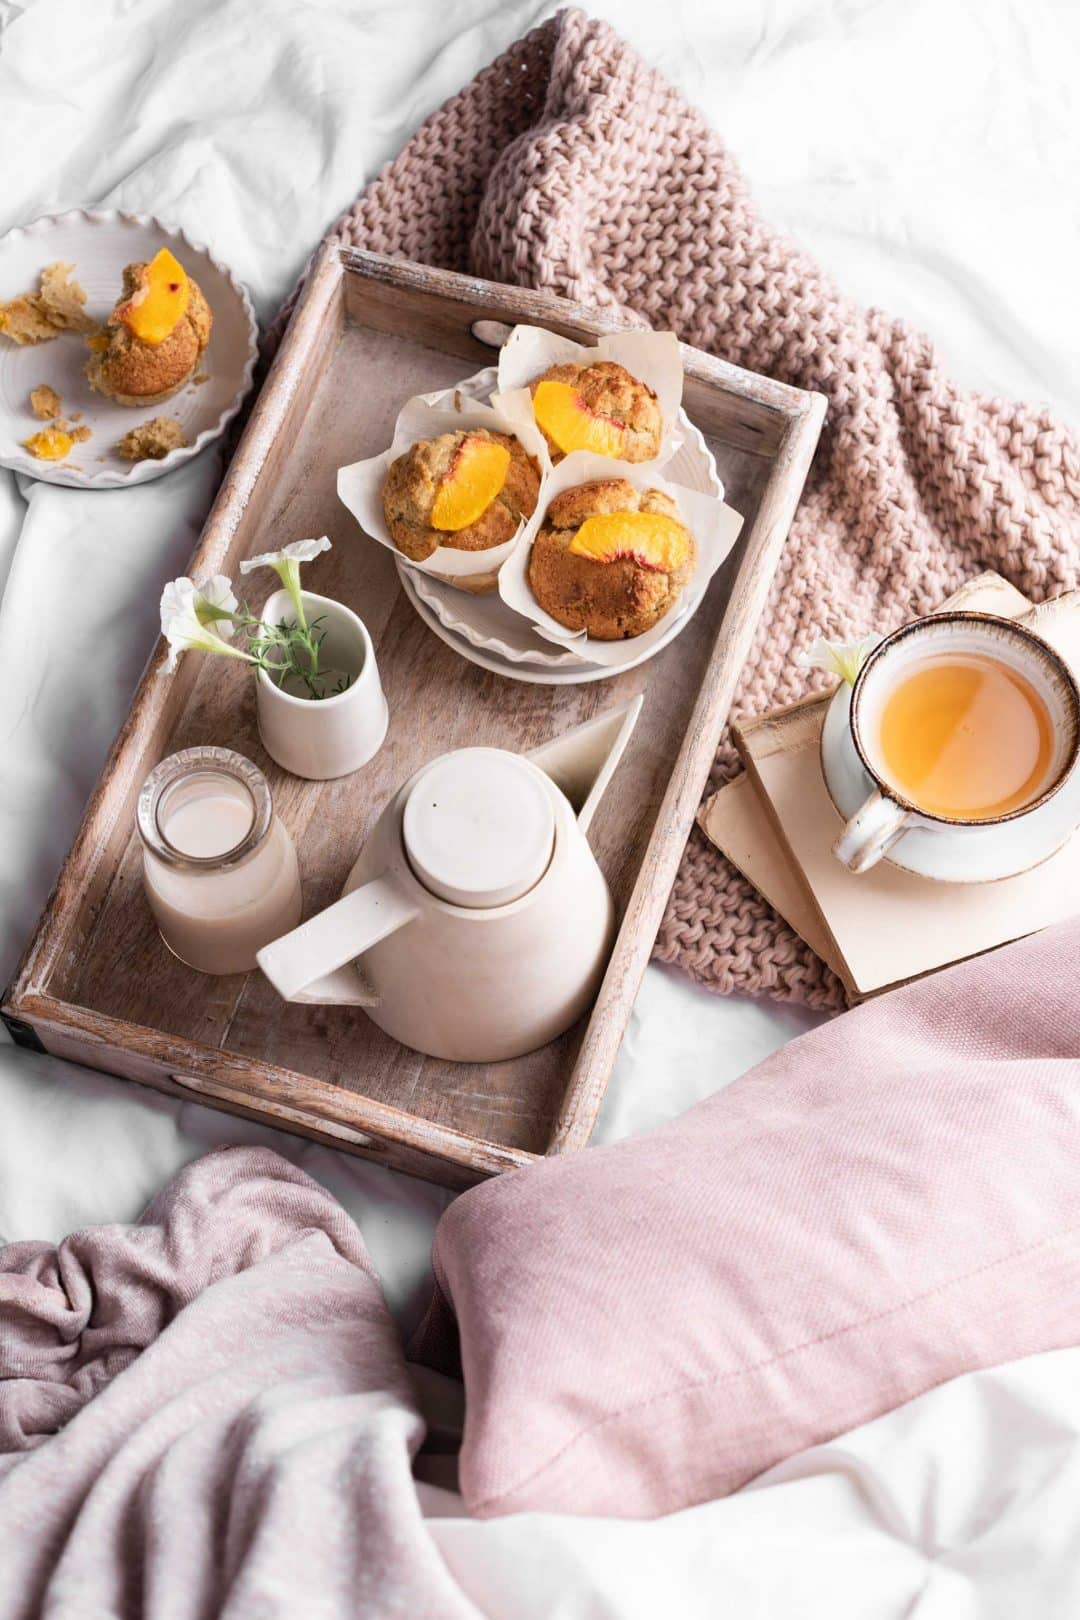 Breakfast in Bed with Peach Muffins